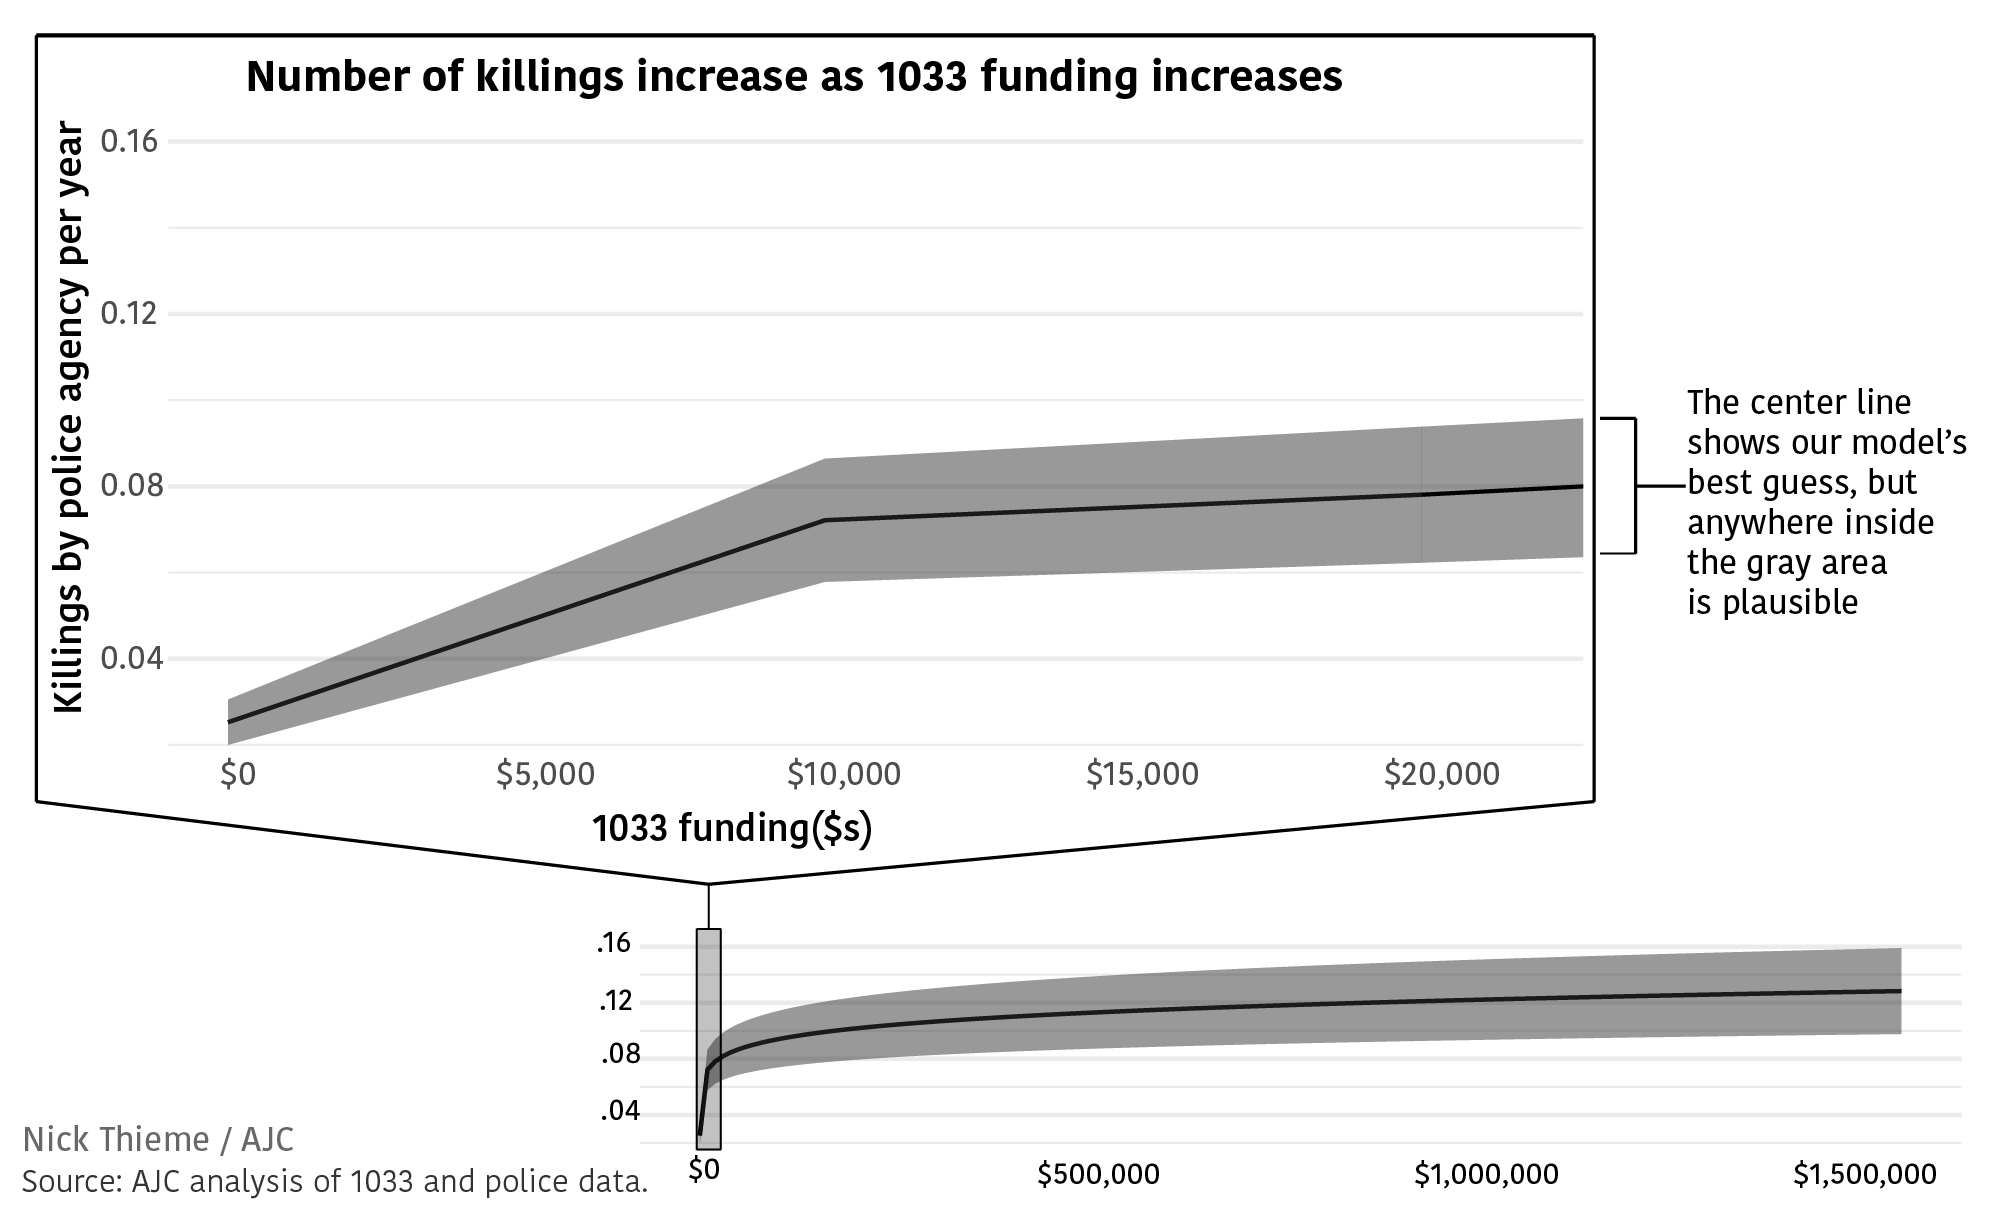 The number of killings increases as 1033 funding increases